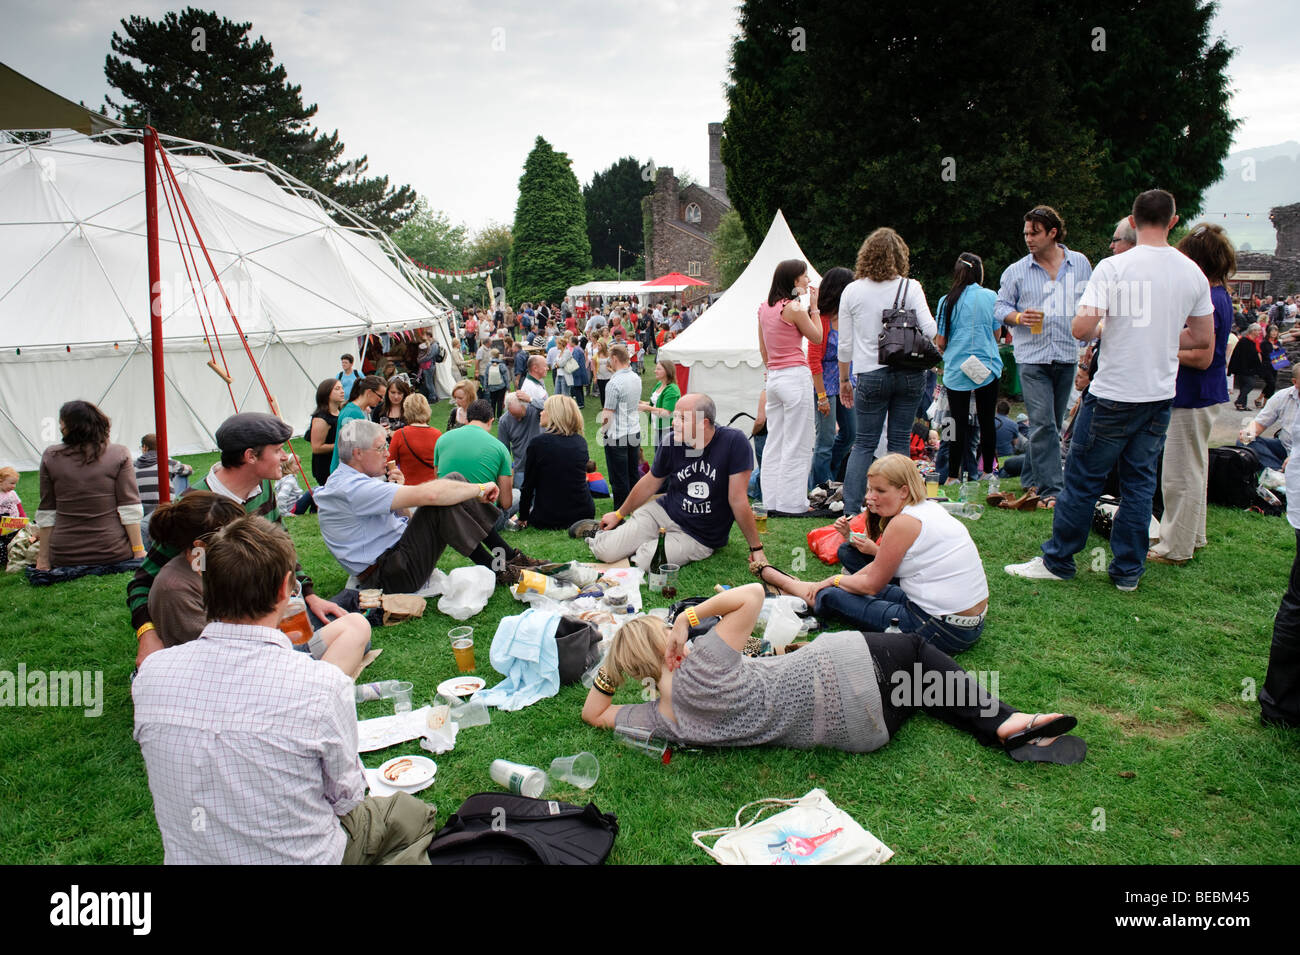 People relaxing in the castle grounds at the 2009 Abergavenny food festival, Monmouthshire south wales UK. - Stock Image